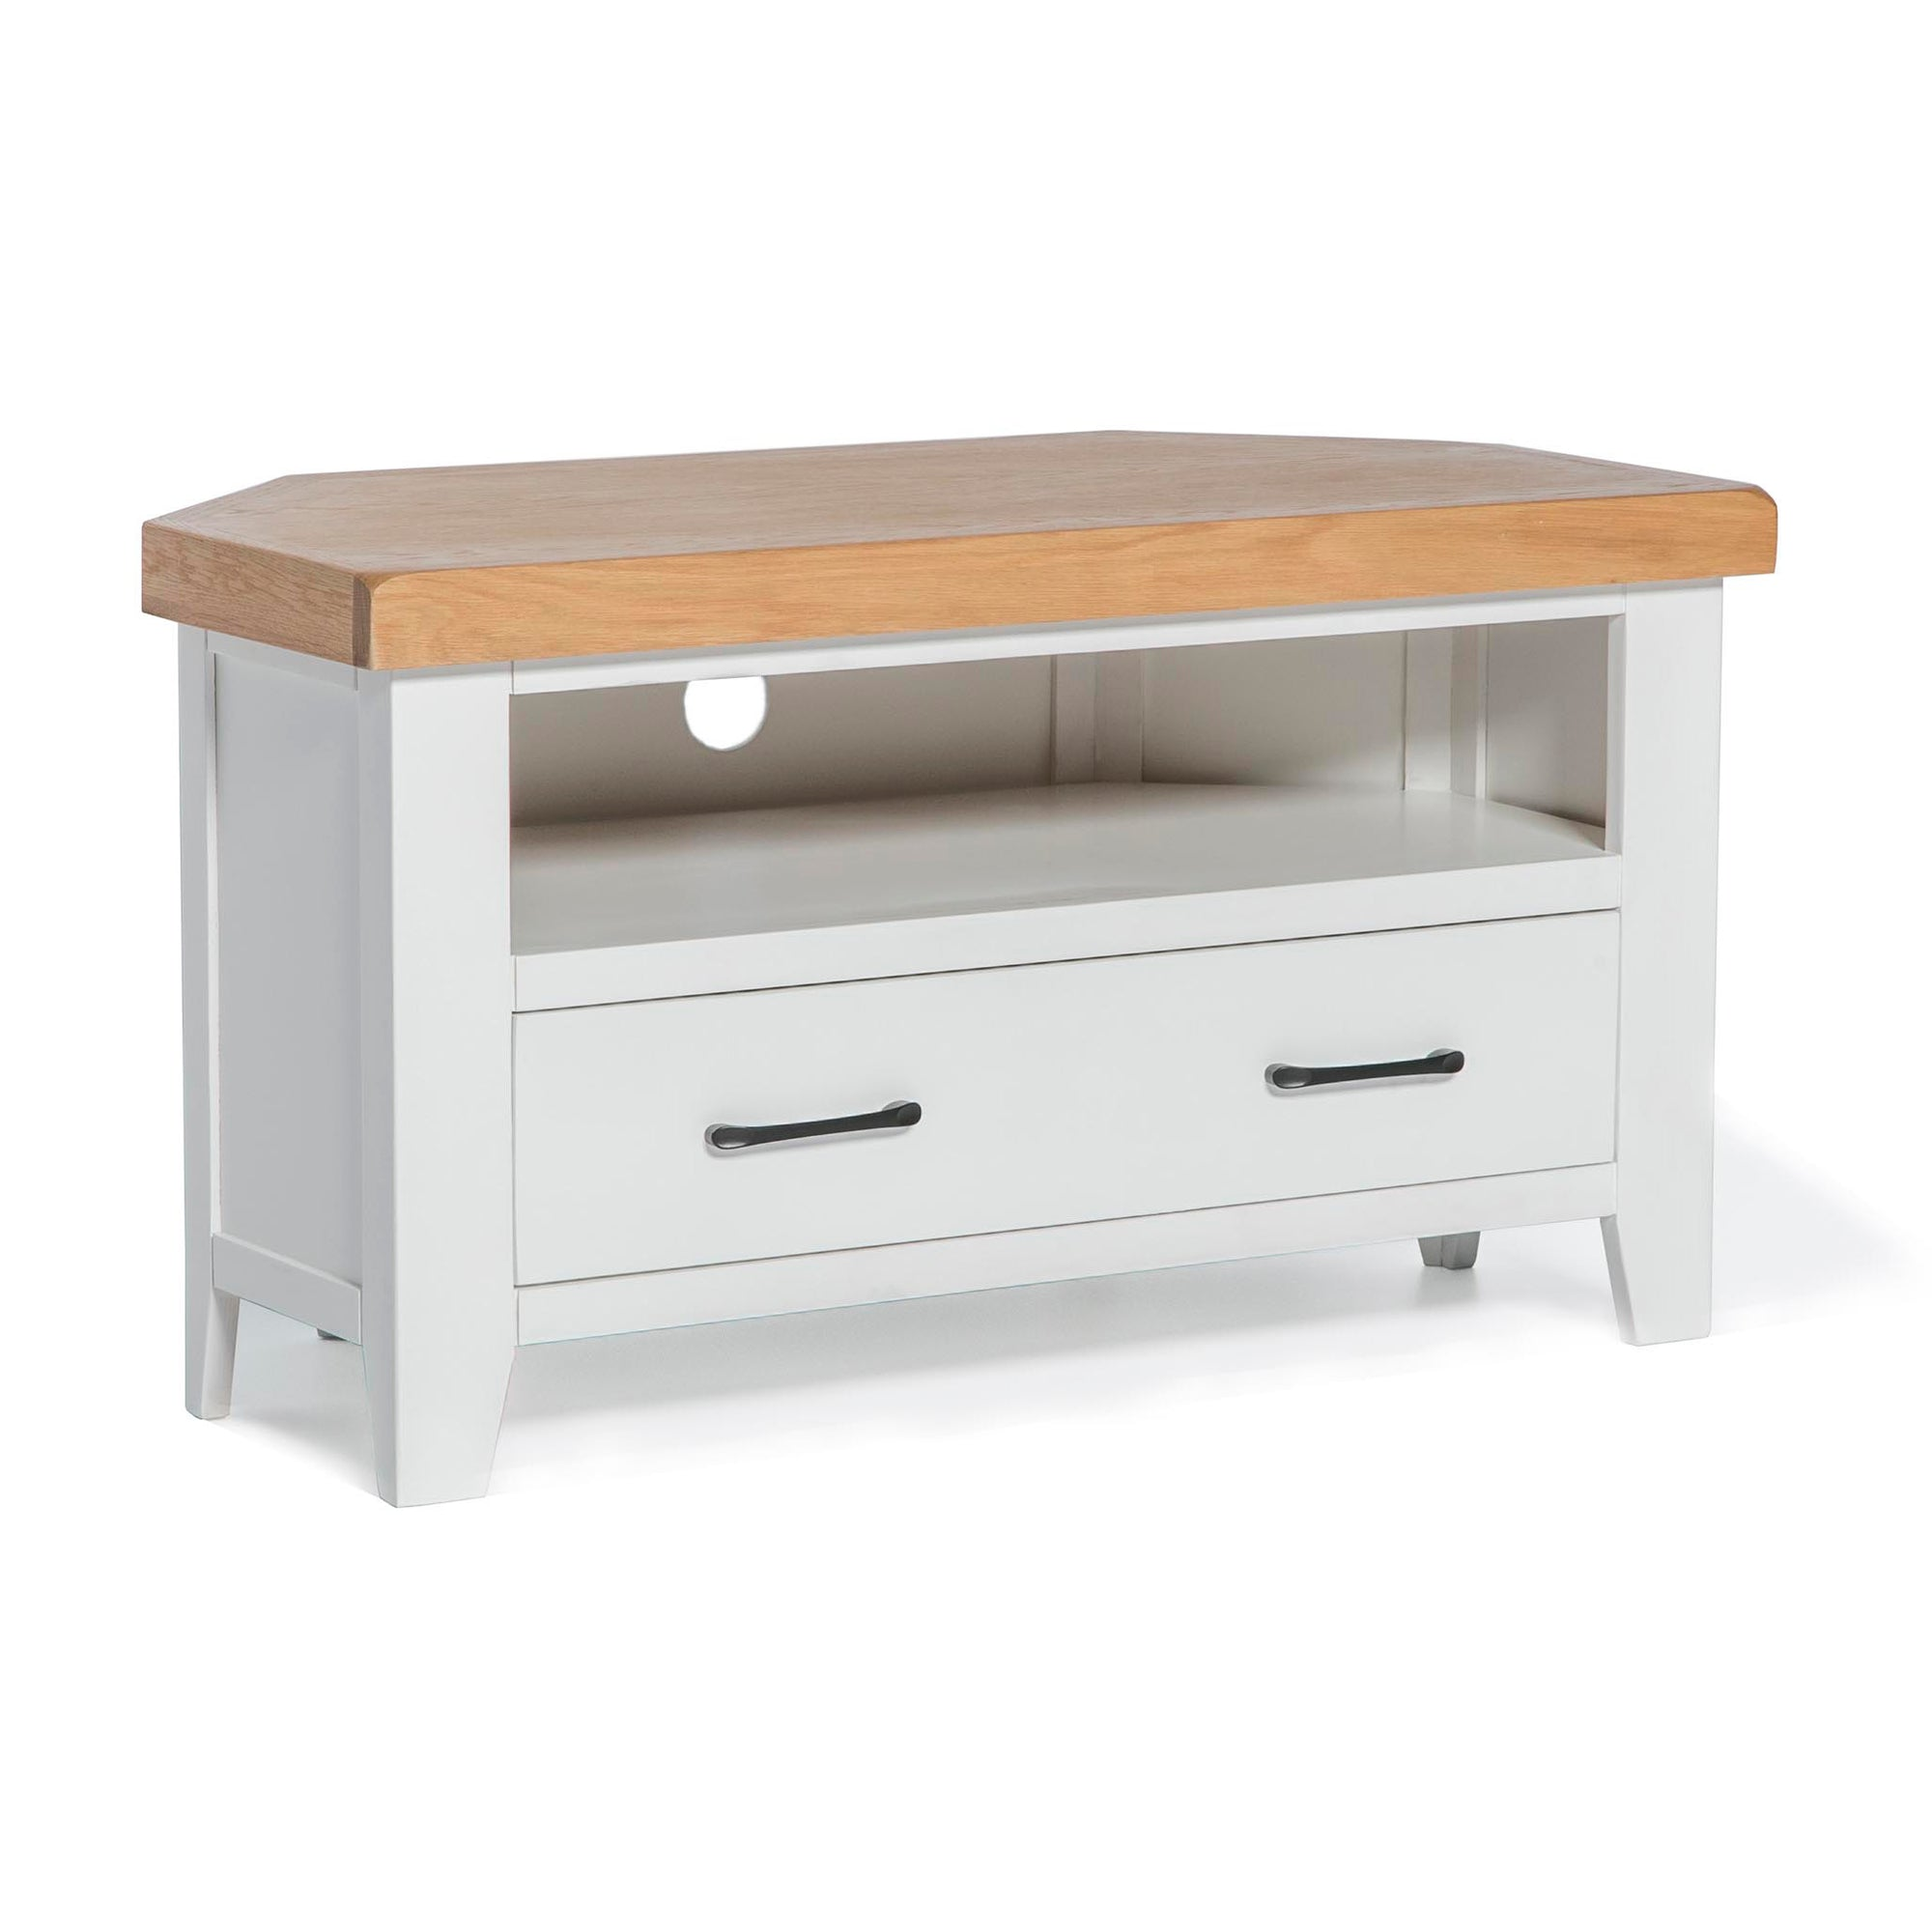 Chatsworth White 90cm Corner TV Stand by Roseland Furniture